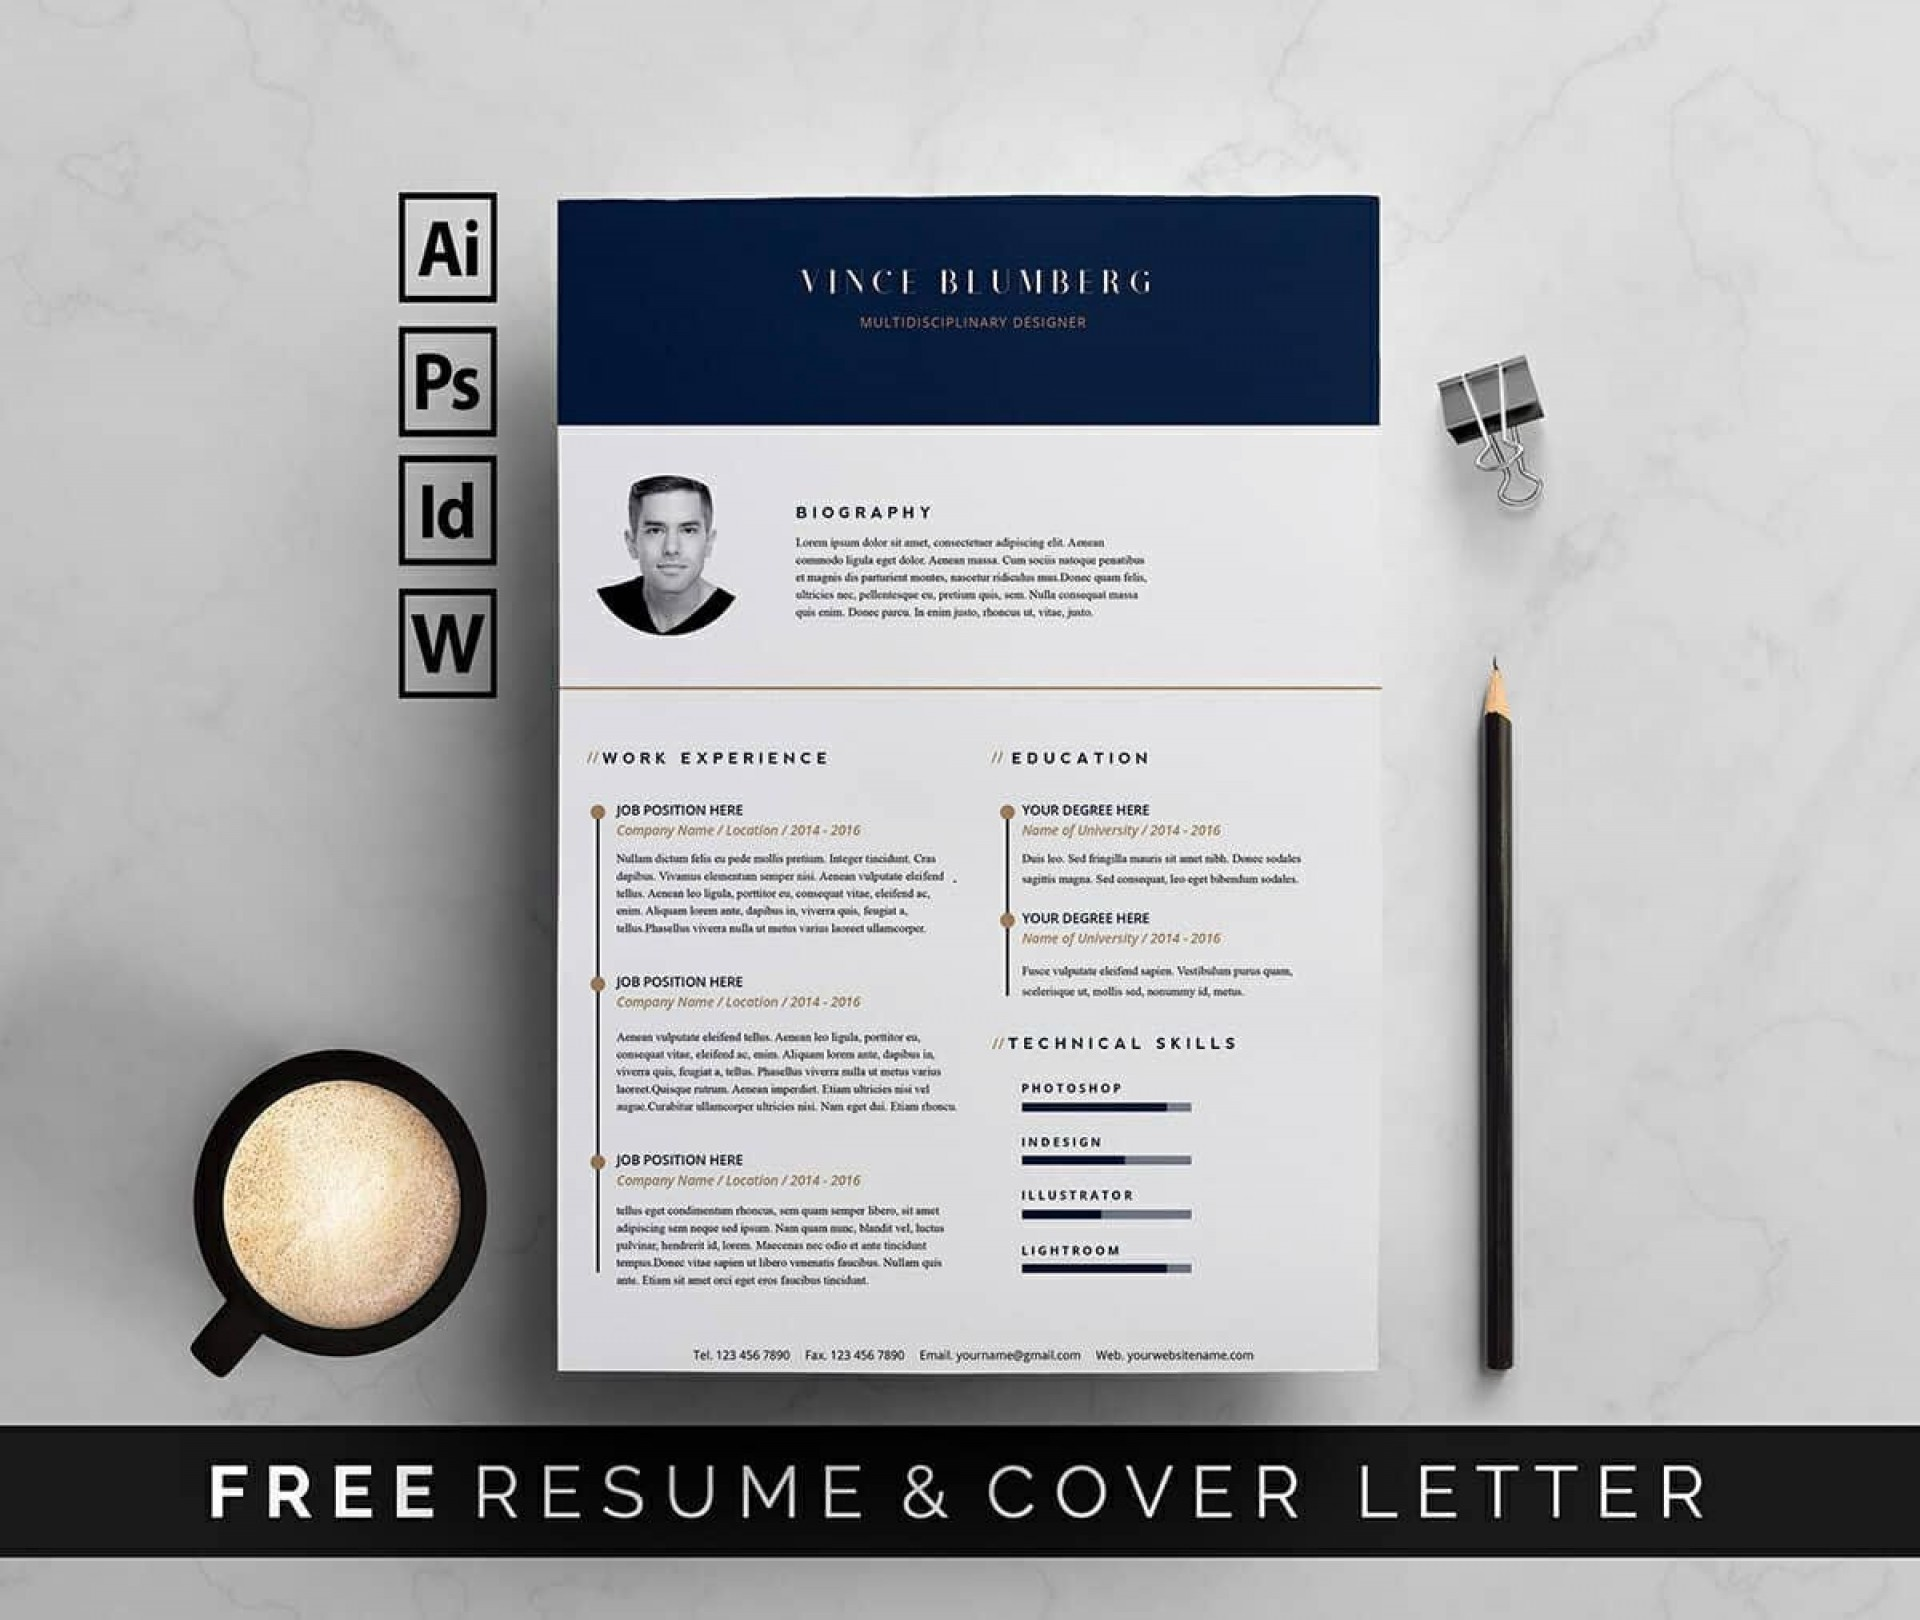 009 Phenomenal Download Free Resume Template Word 2018 High Def 1920